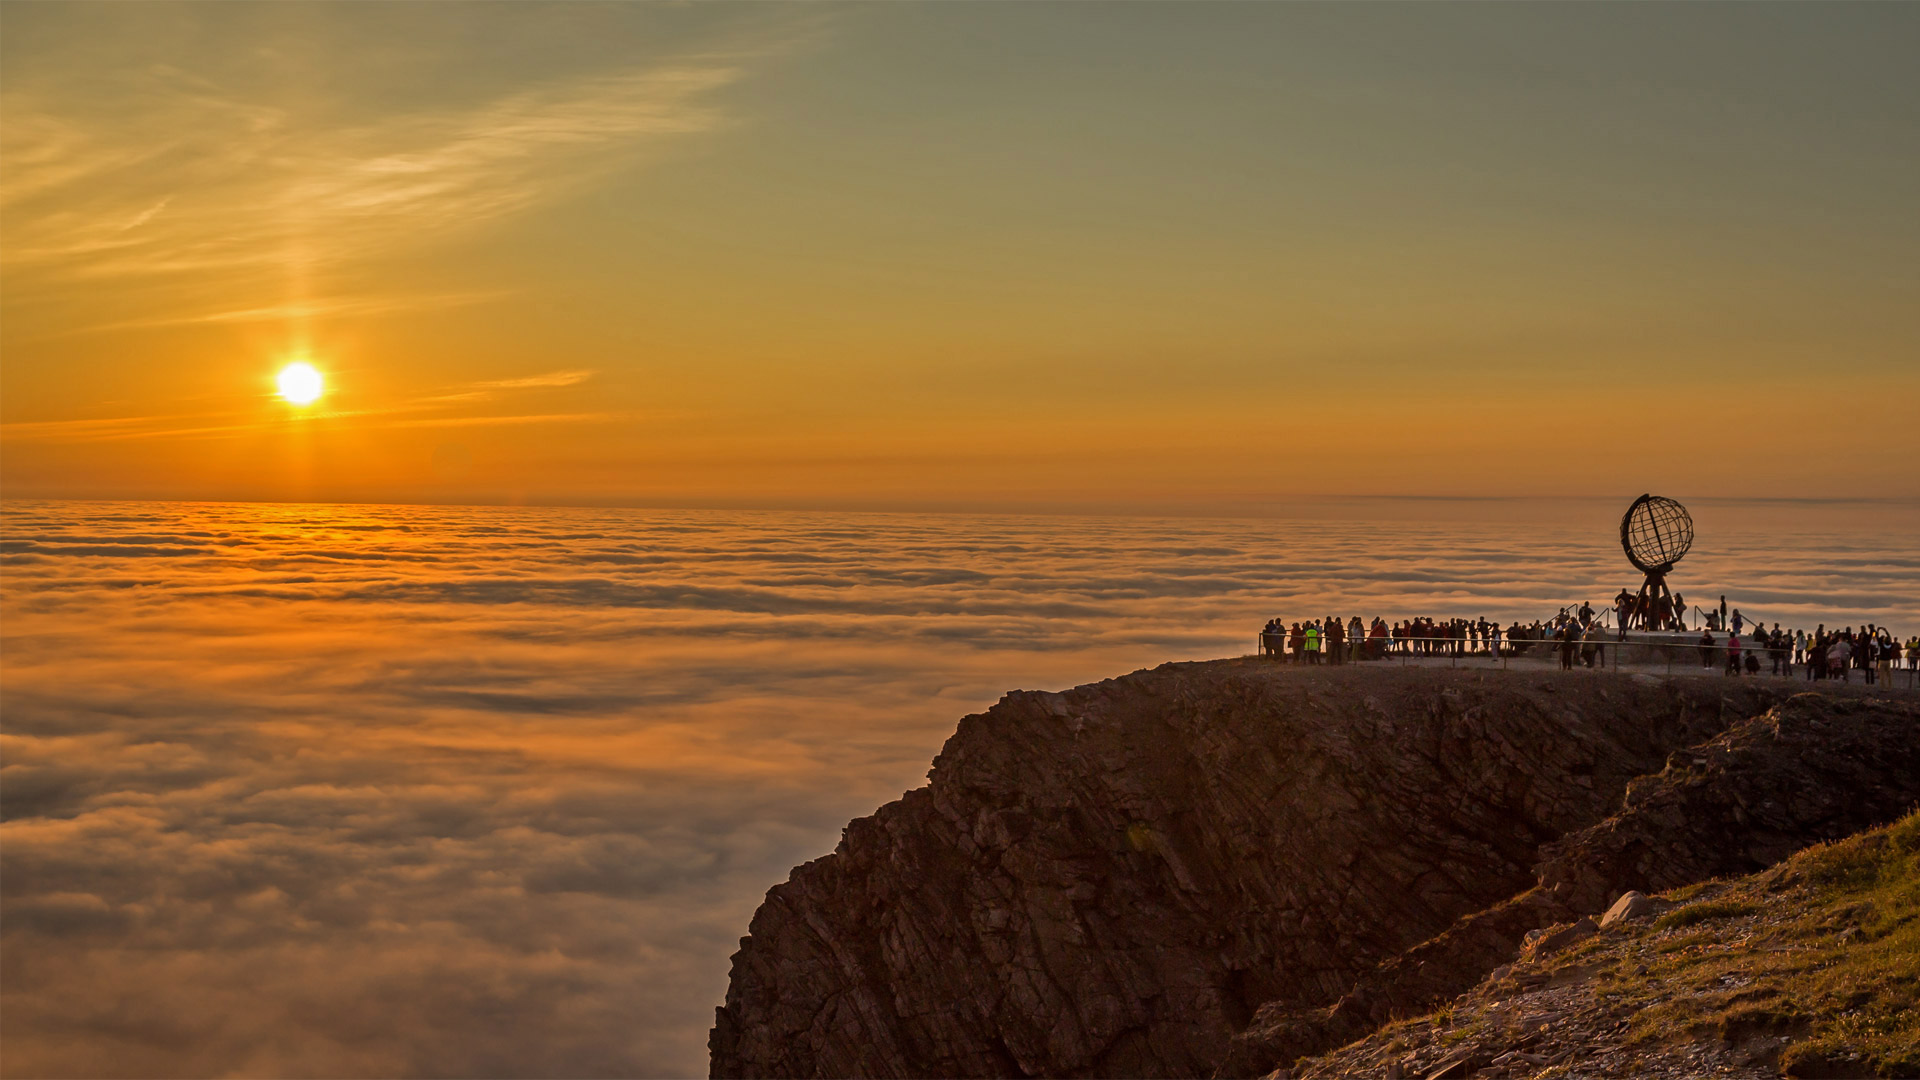 Midnight sun at North Cape, Norway (© Ron Bennett/Shutterstock)(Bing United States)